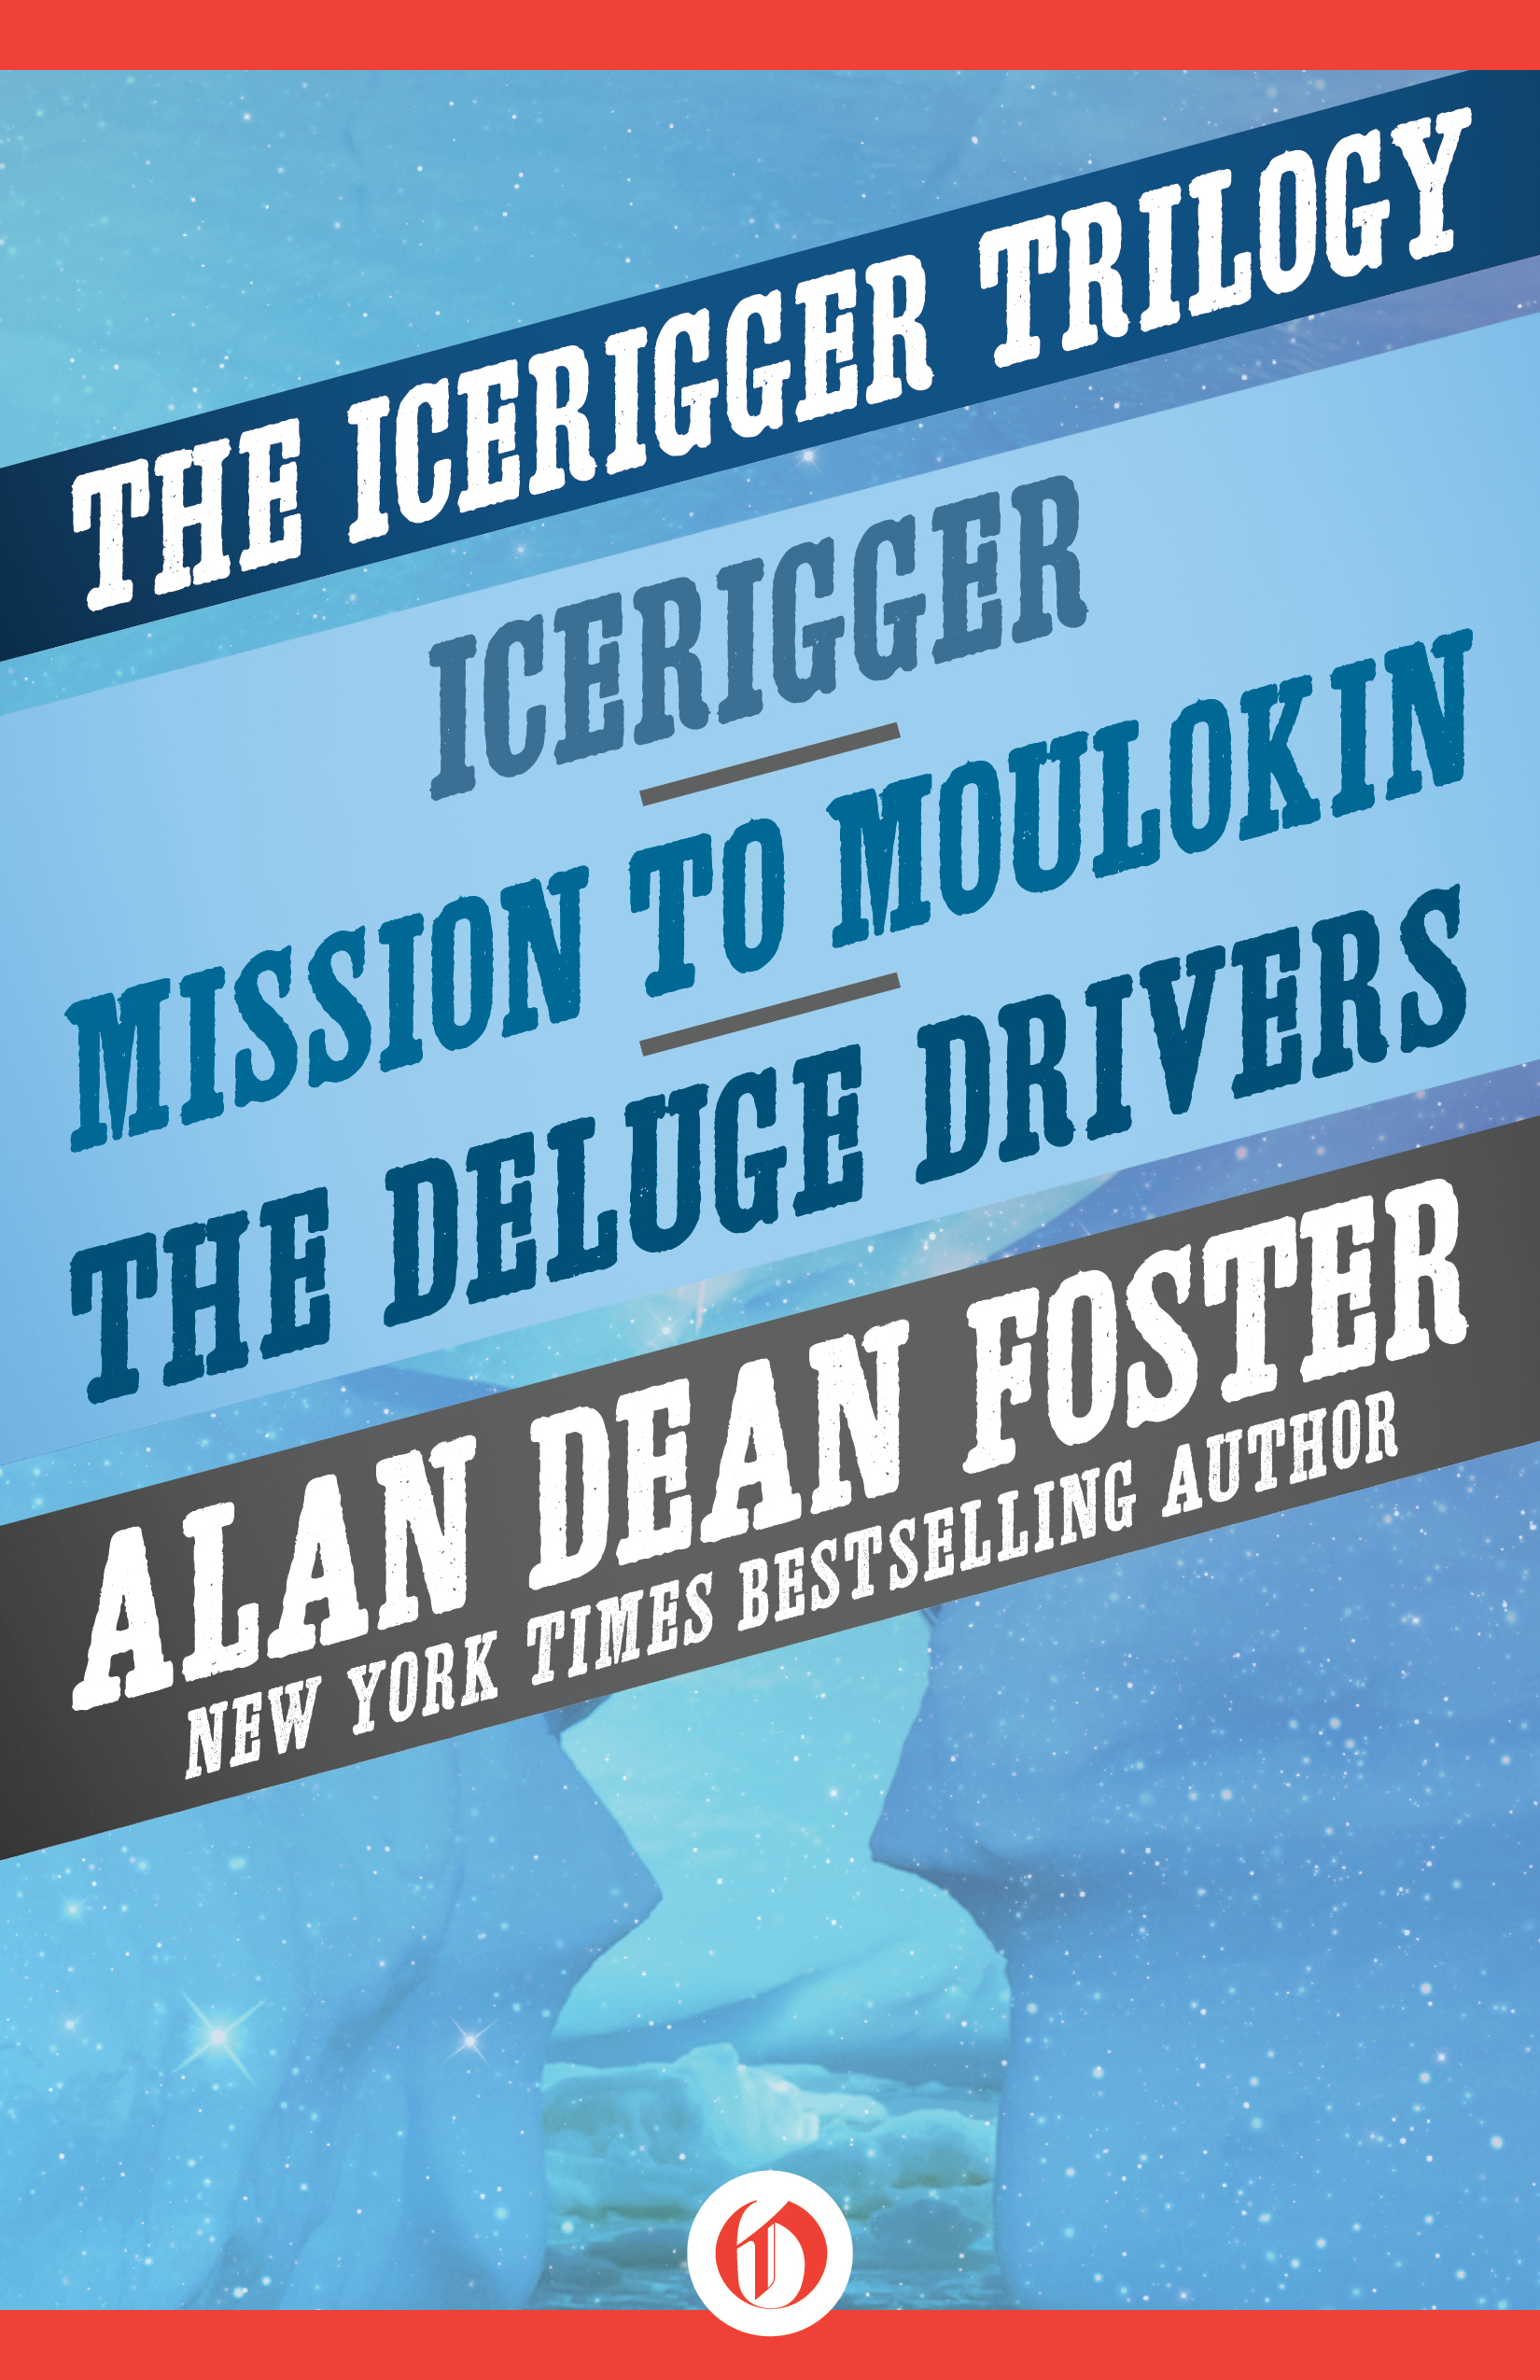 Alan Dean Foster Electrical Test Riddle No3 Generator Suddenly Short Circuit Omnibus Volume So Here They Are Finally All Three Books Together For The First Time Icerigger Mission To Moulokin And Deluge Drivers